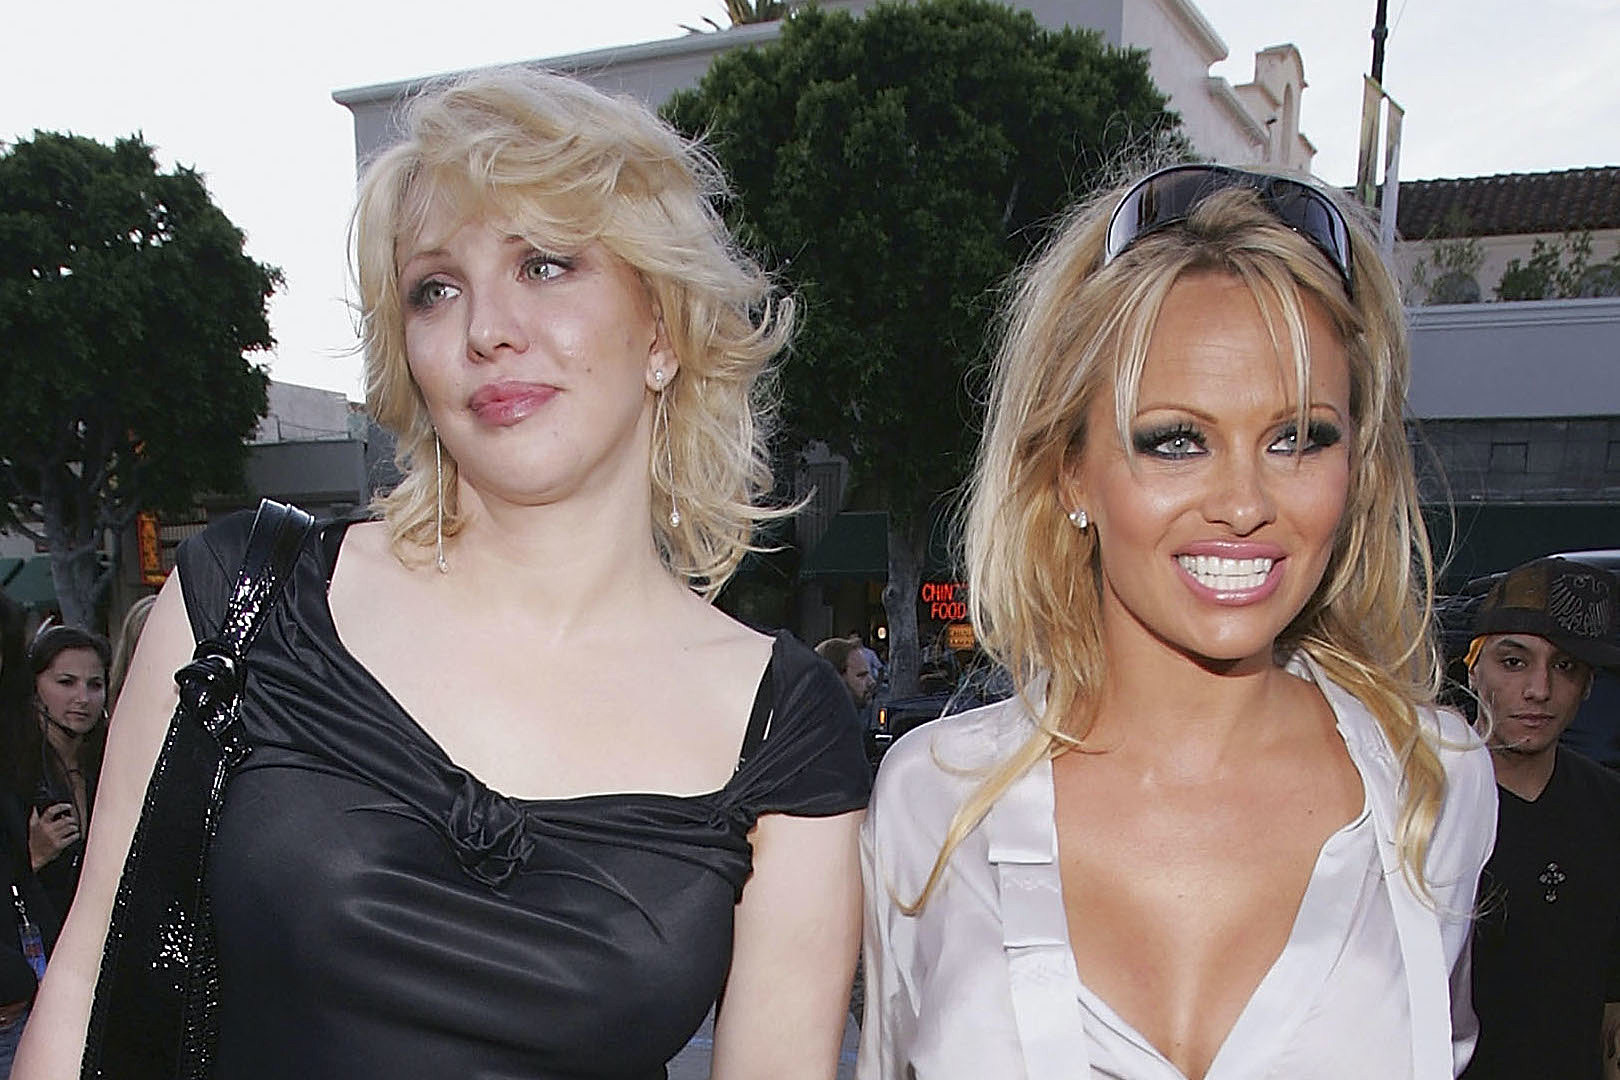 Courtney Love Blasts 'Pam & Tommy' Show, Calls It 'Vile'